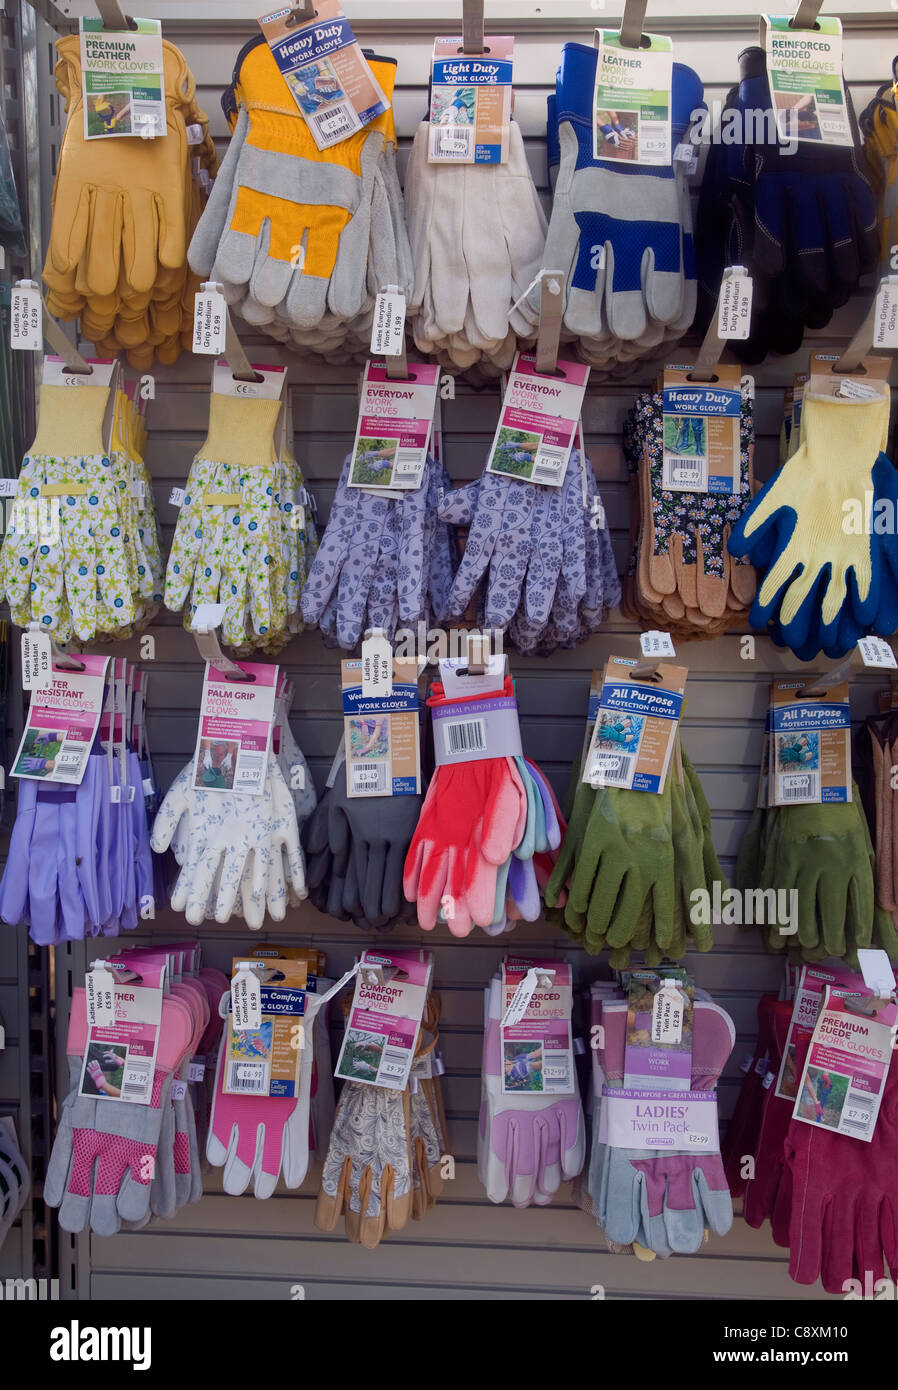 Gardening is a major leisure industry as suggested by this display rack of garden gloves in different styles and - Stock Image